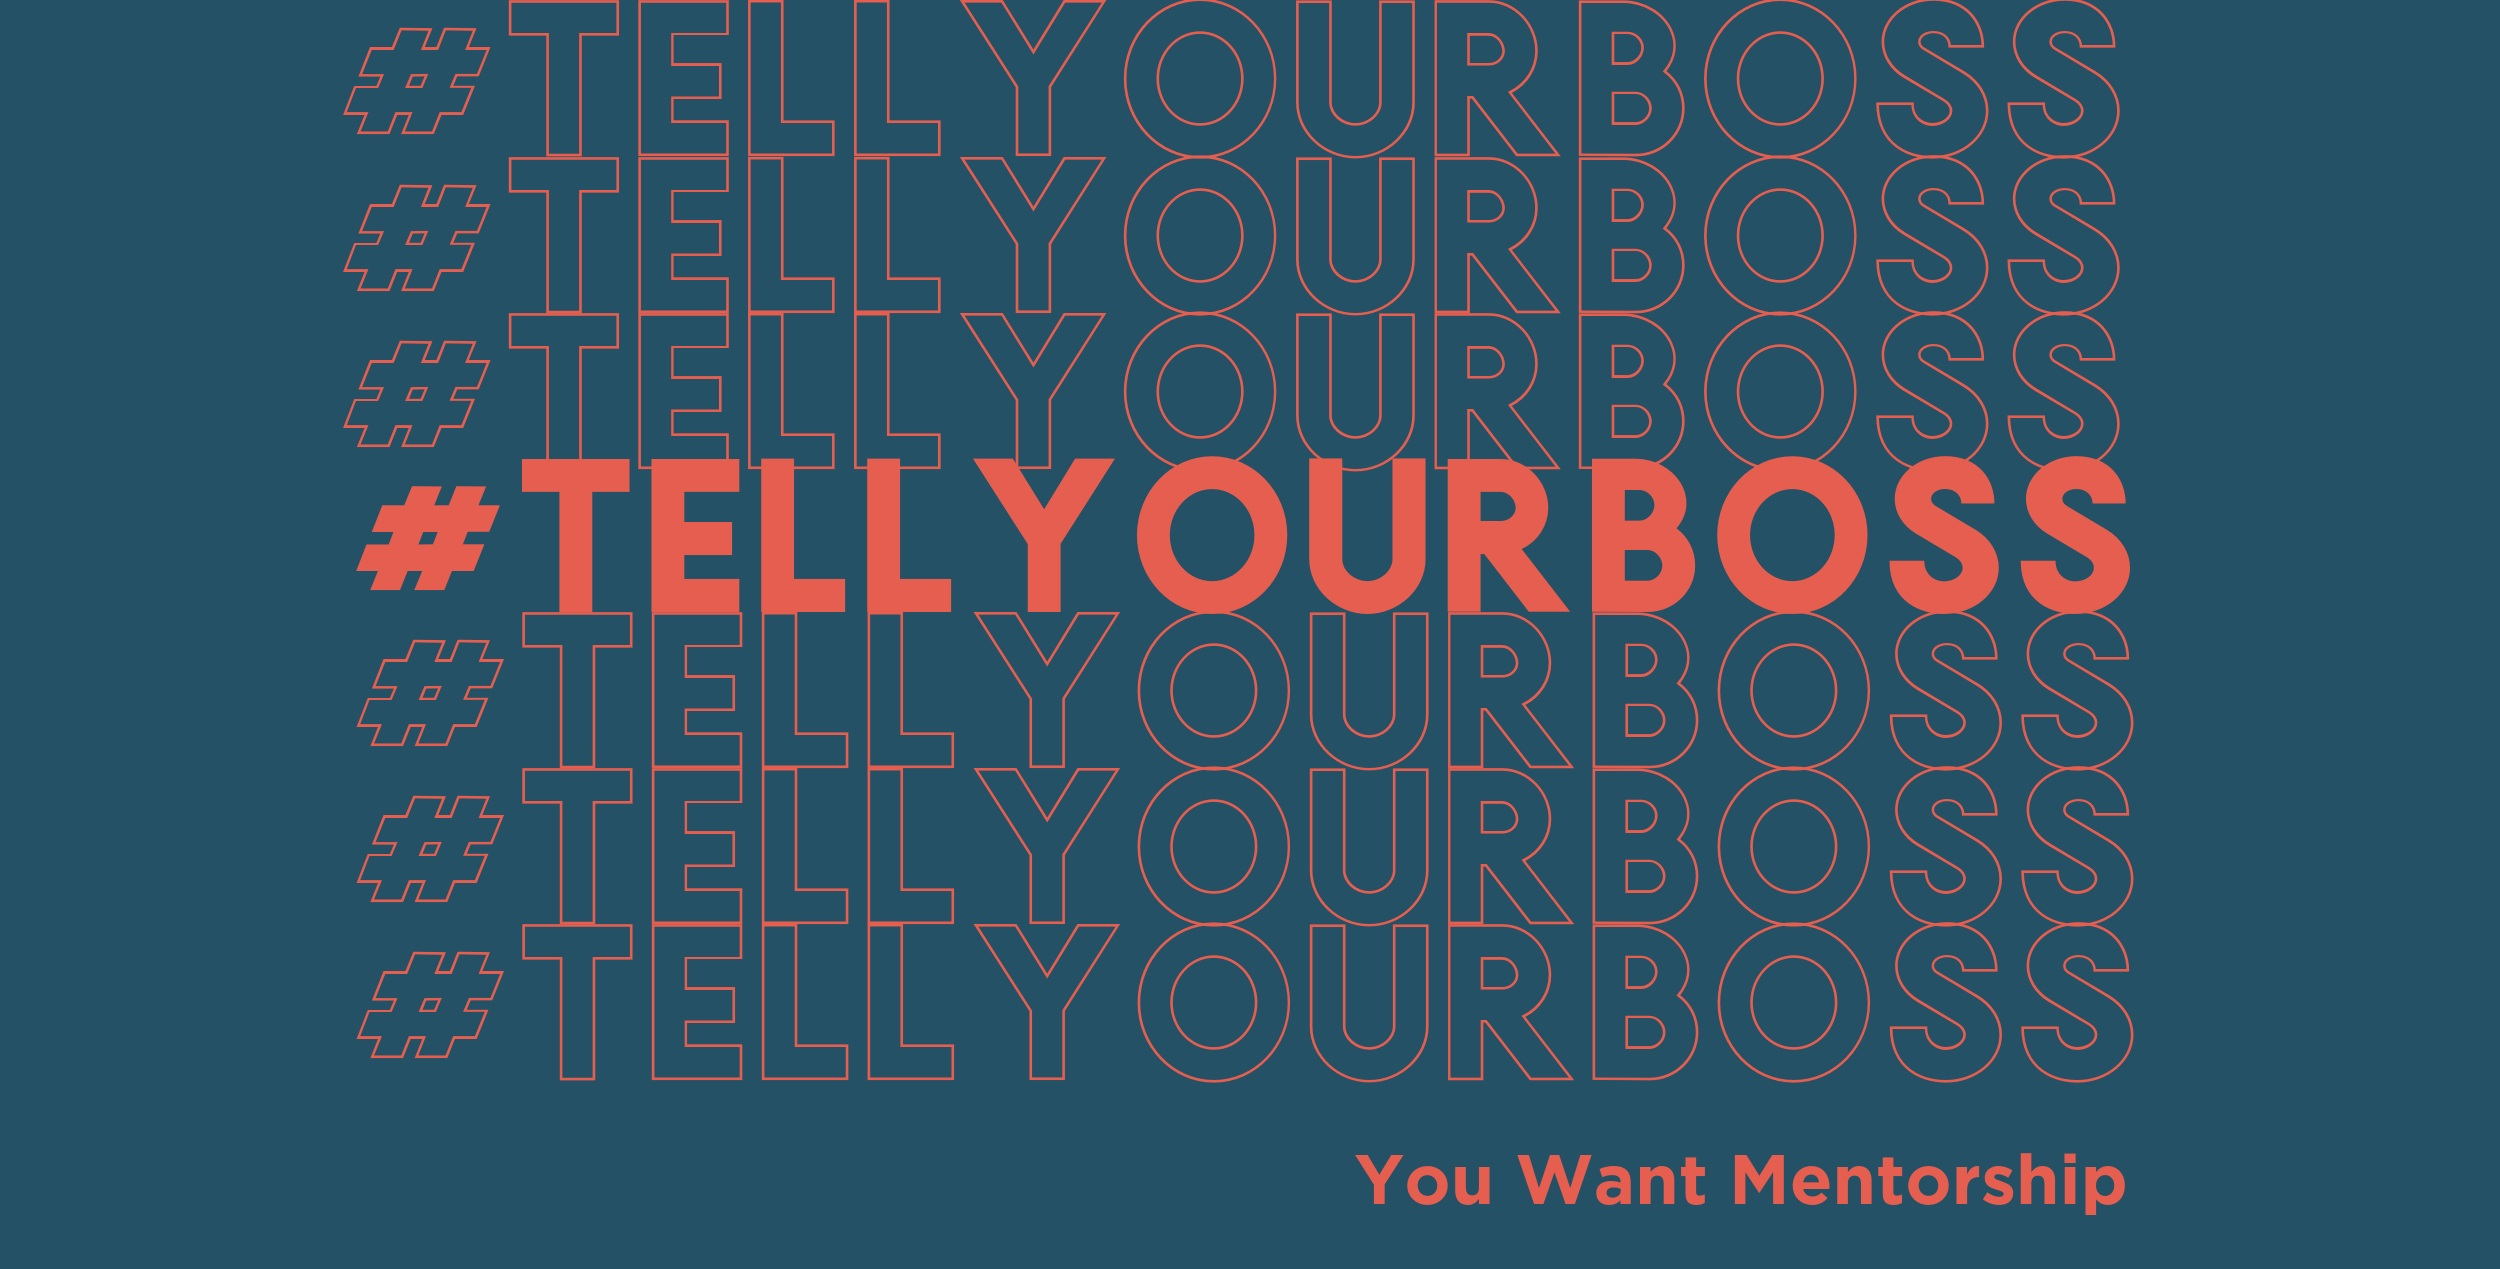 Sign up to tell your boss you want mentorship at your organization.